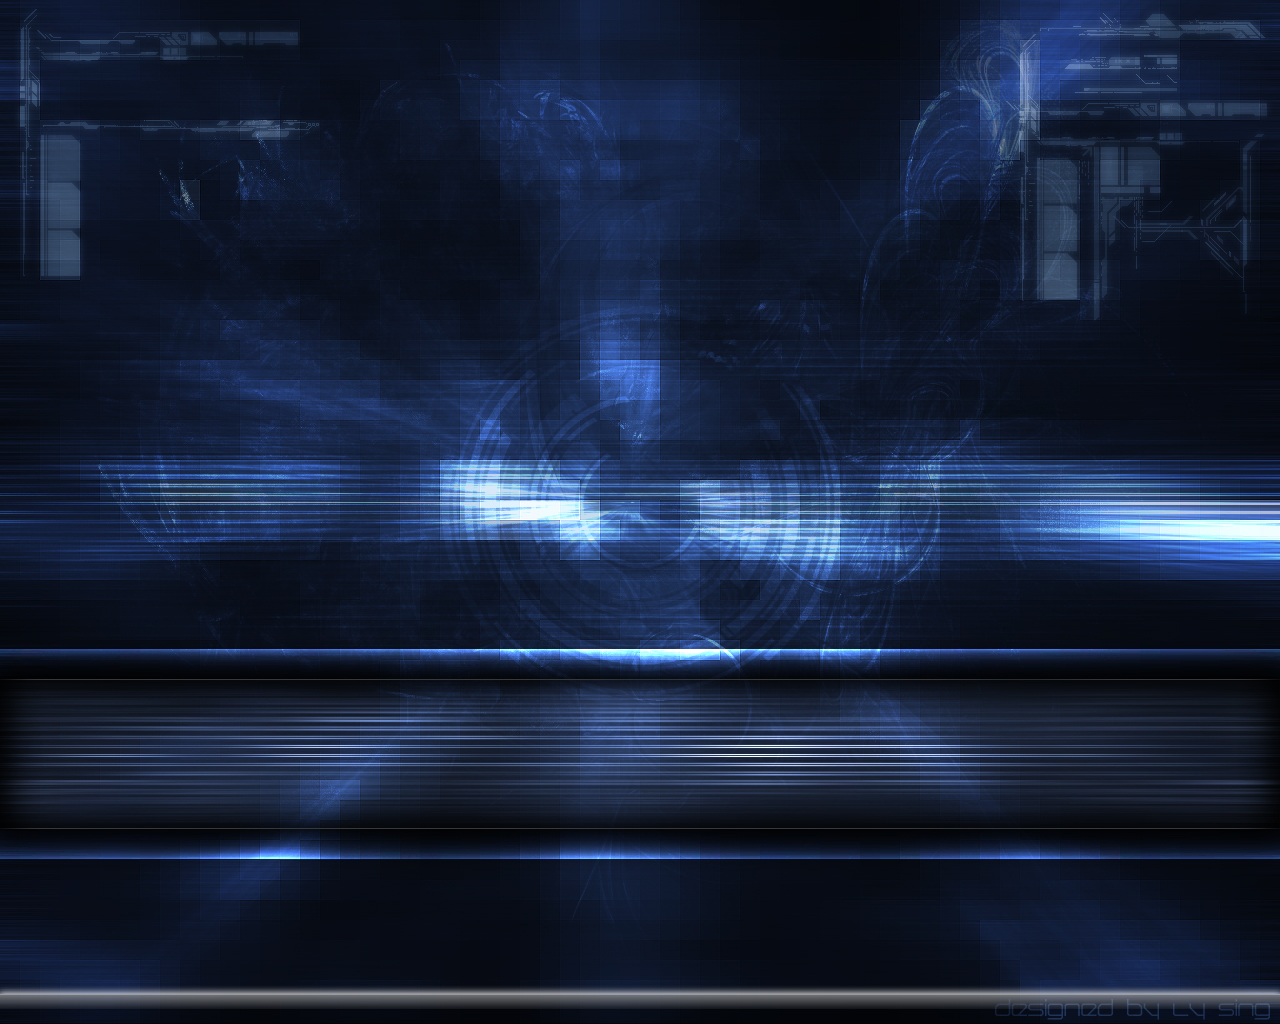 Techno blur wallpaper v3 by LyX91 1280x1024